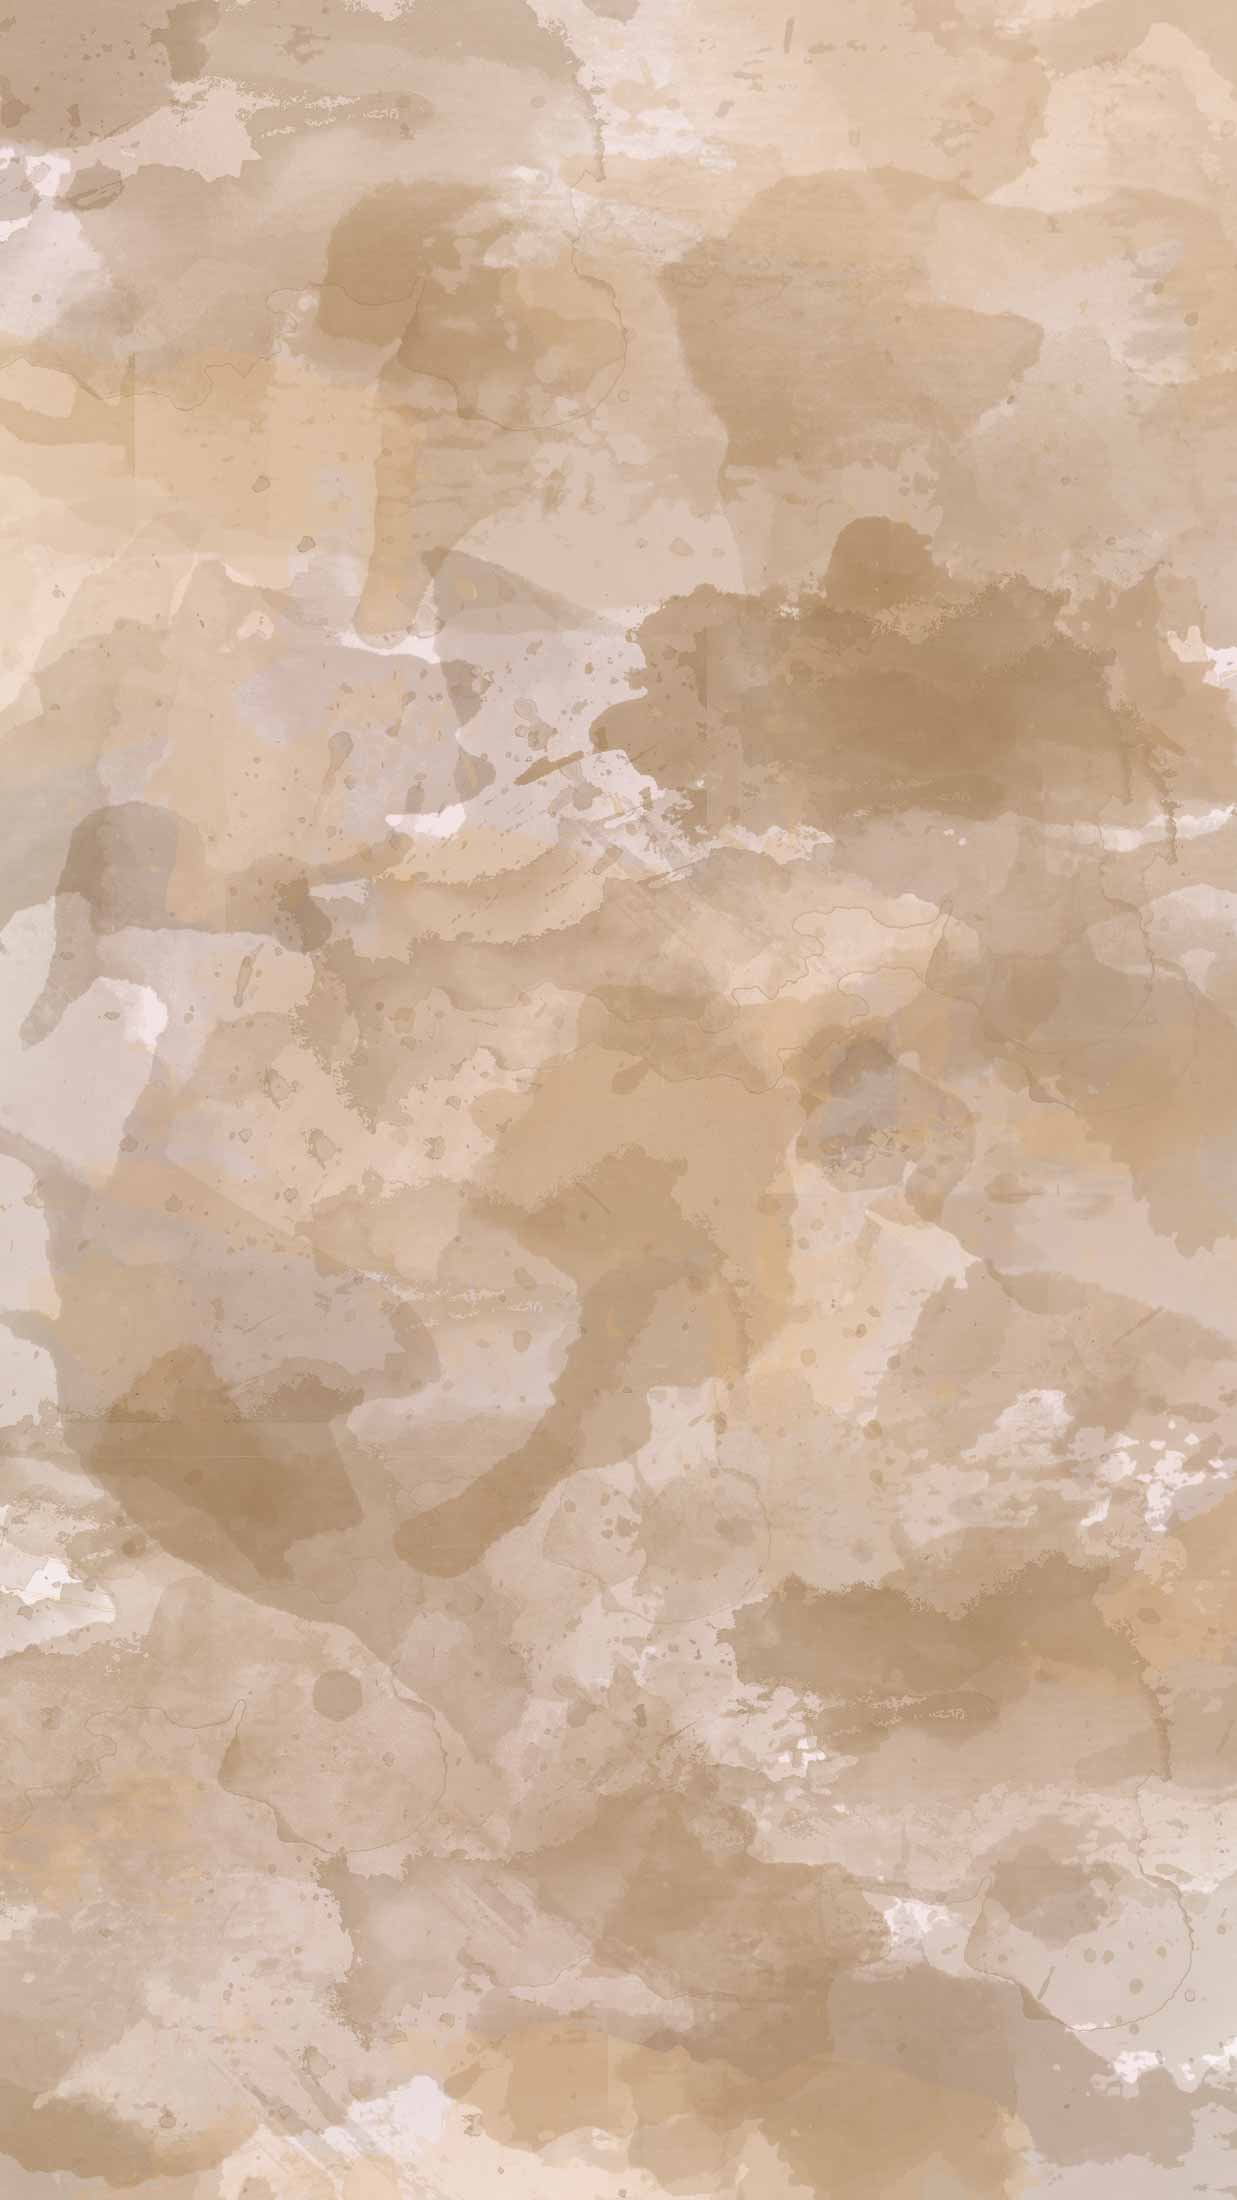 Download Watercolour Effect Design for mobile phone wallpaper.